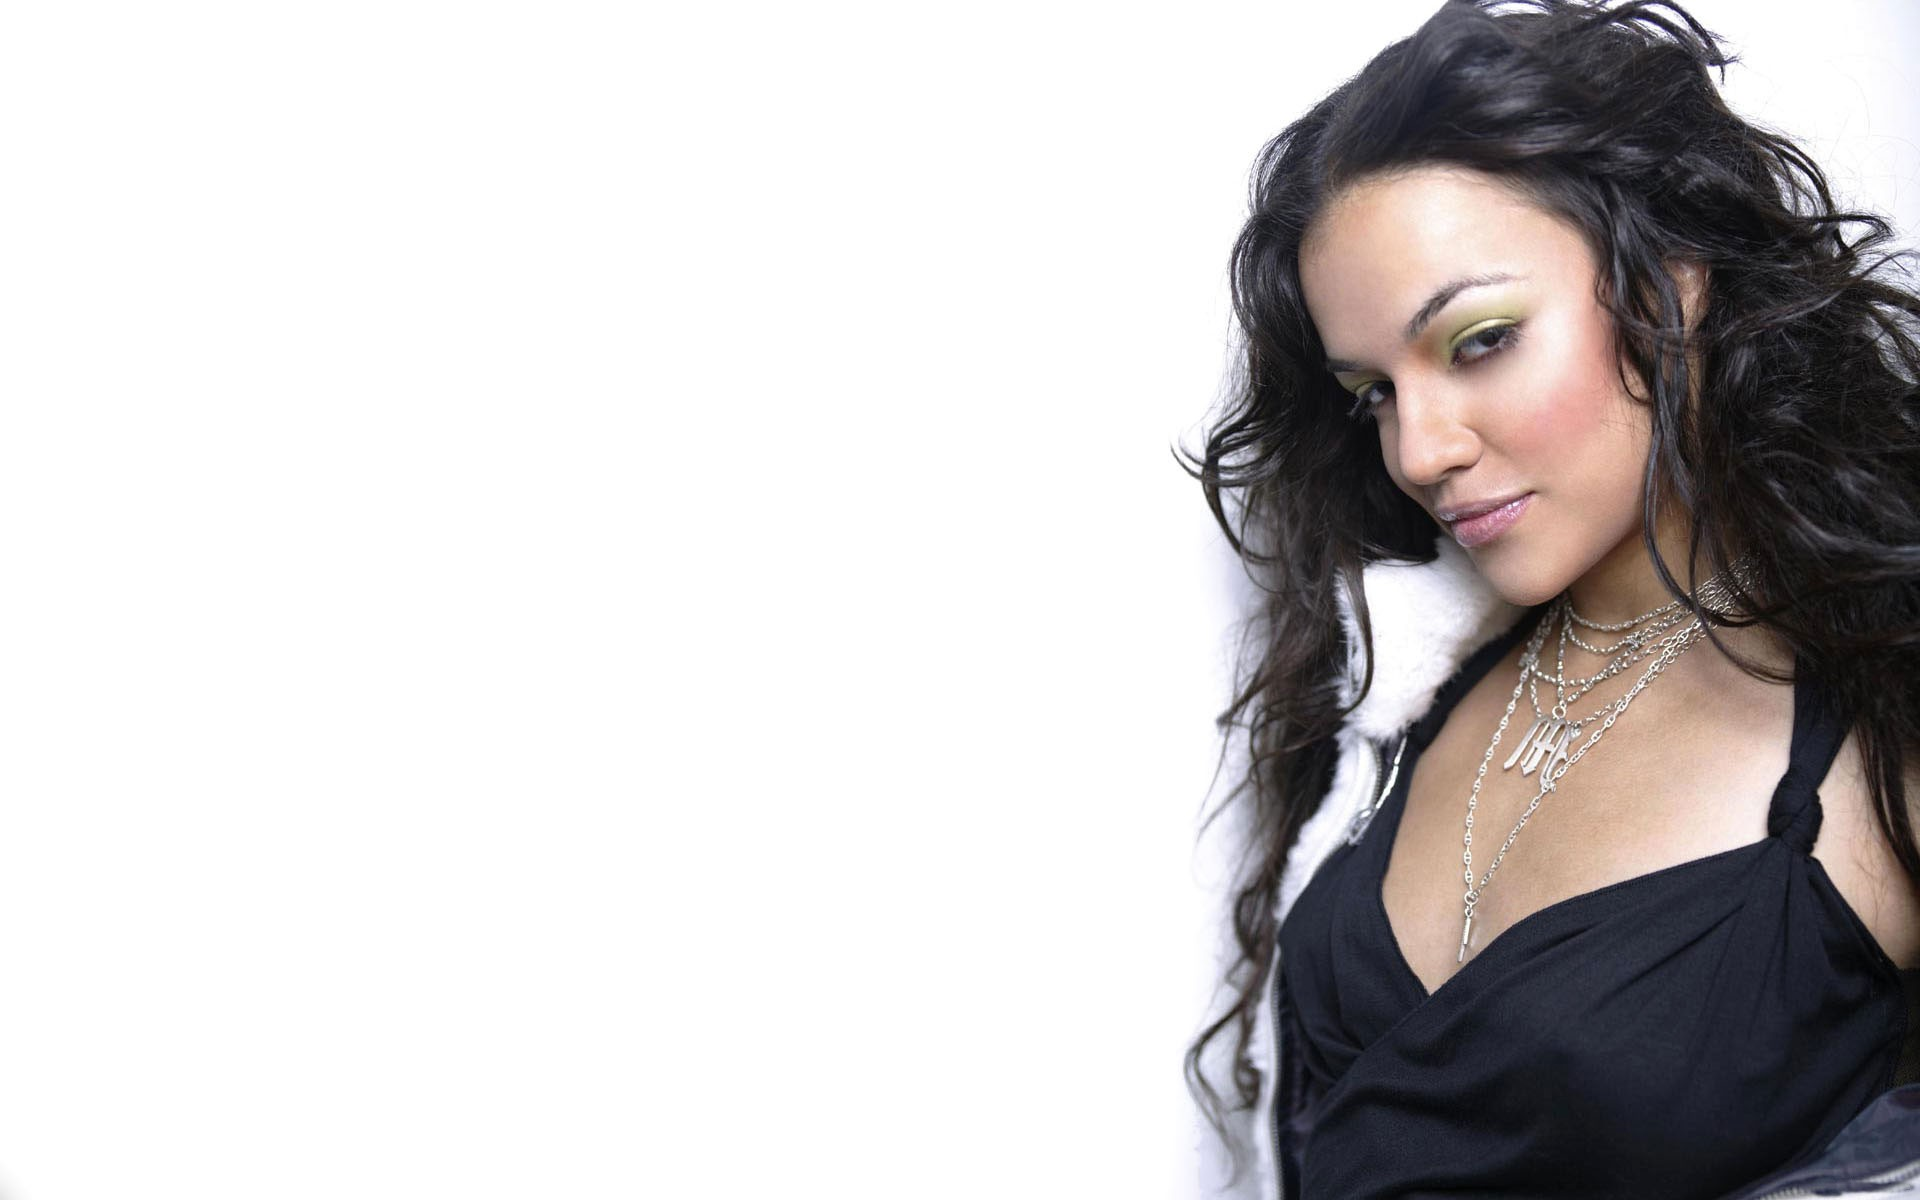 Michelle Rodriguez Full HD Wallpaper And Background Image